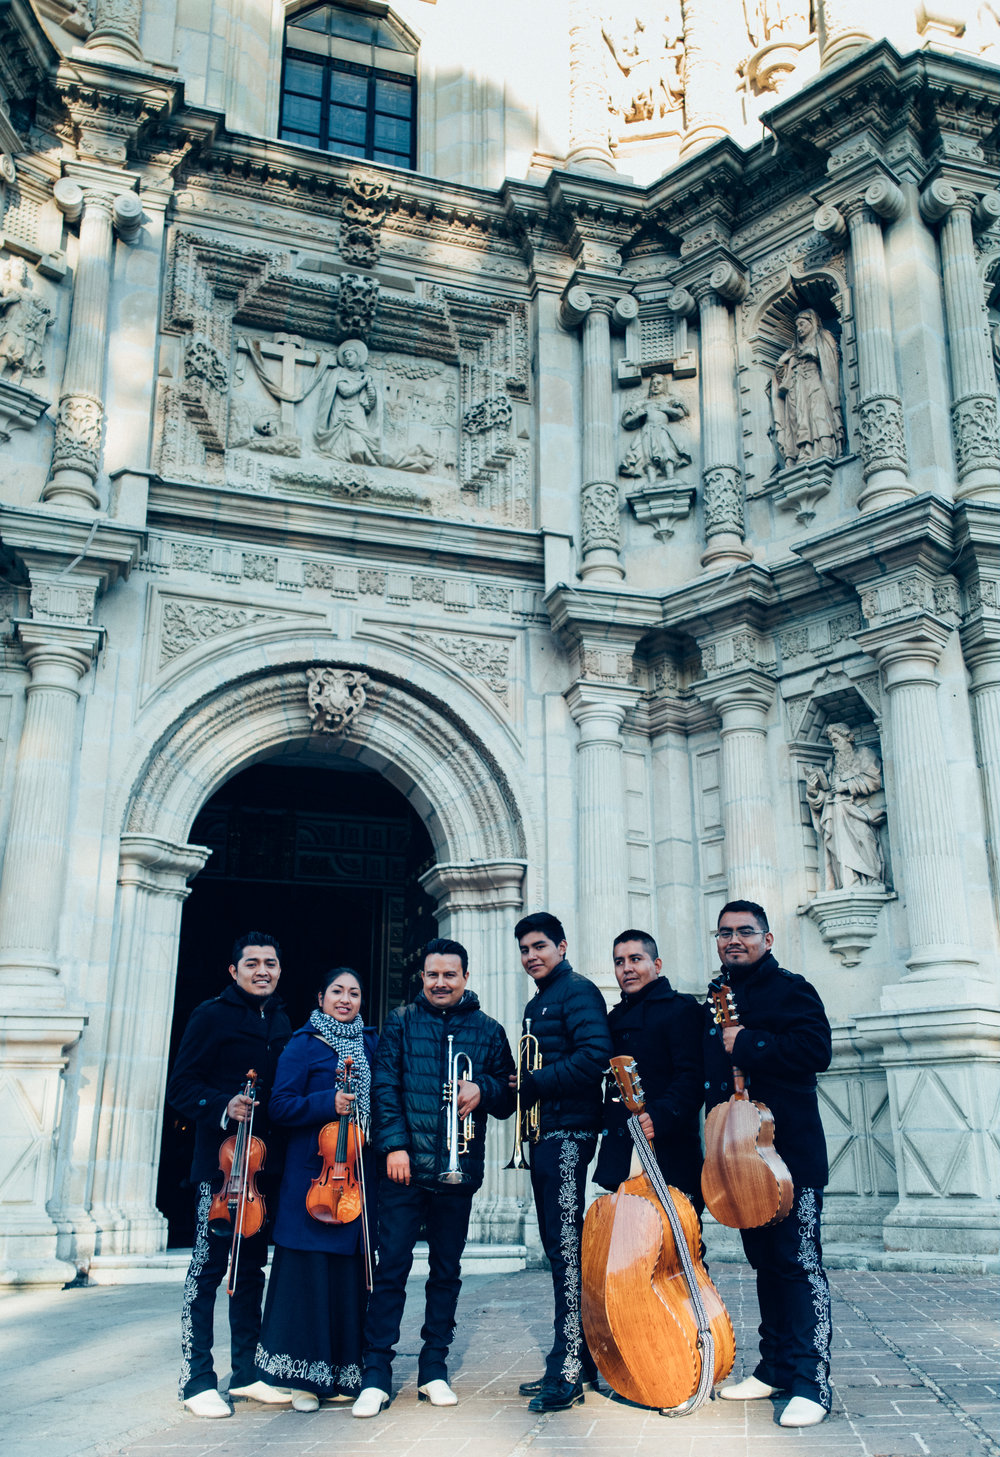 A mariachi band we befriended at the Basílica de Nuestra Señora de la Soledad